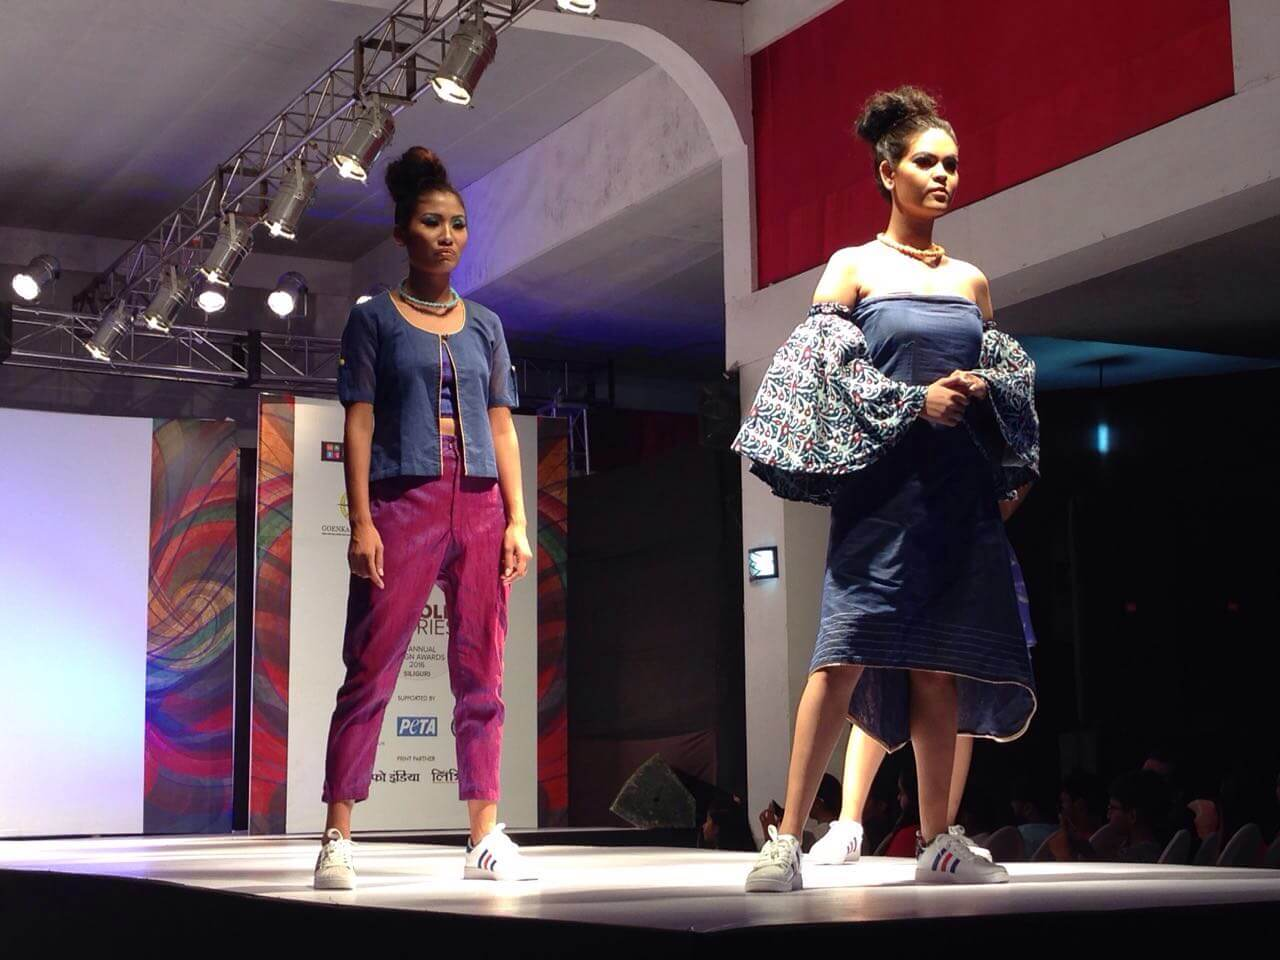 The theme used by Shikha Agarwal was 'Behind the Scene' and the fabric used in her designs were vegan georgette, cotton and twill cotton.